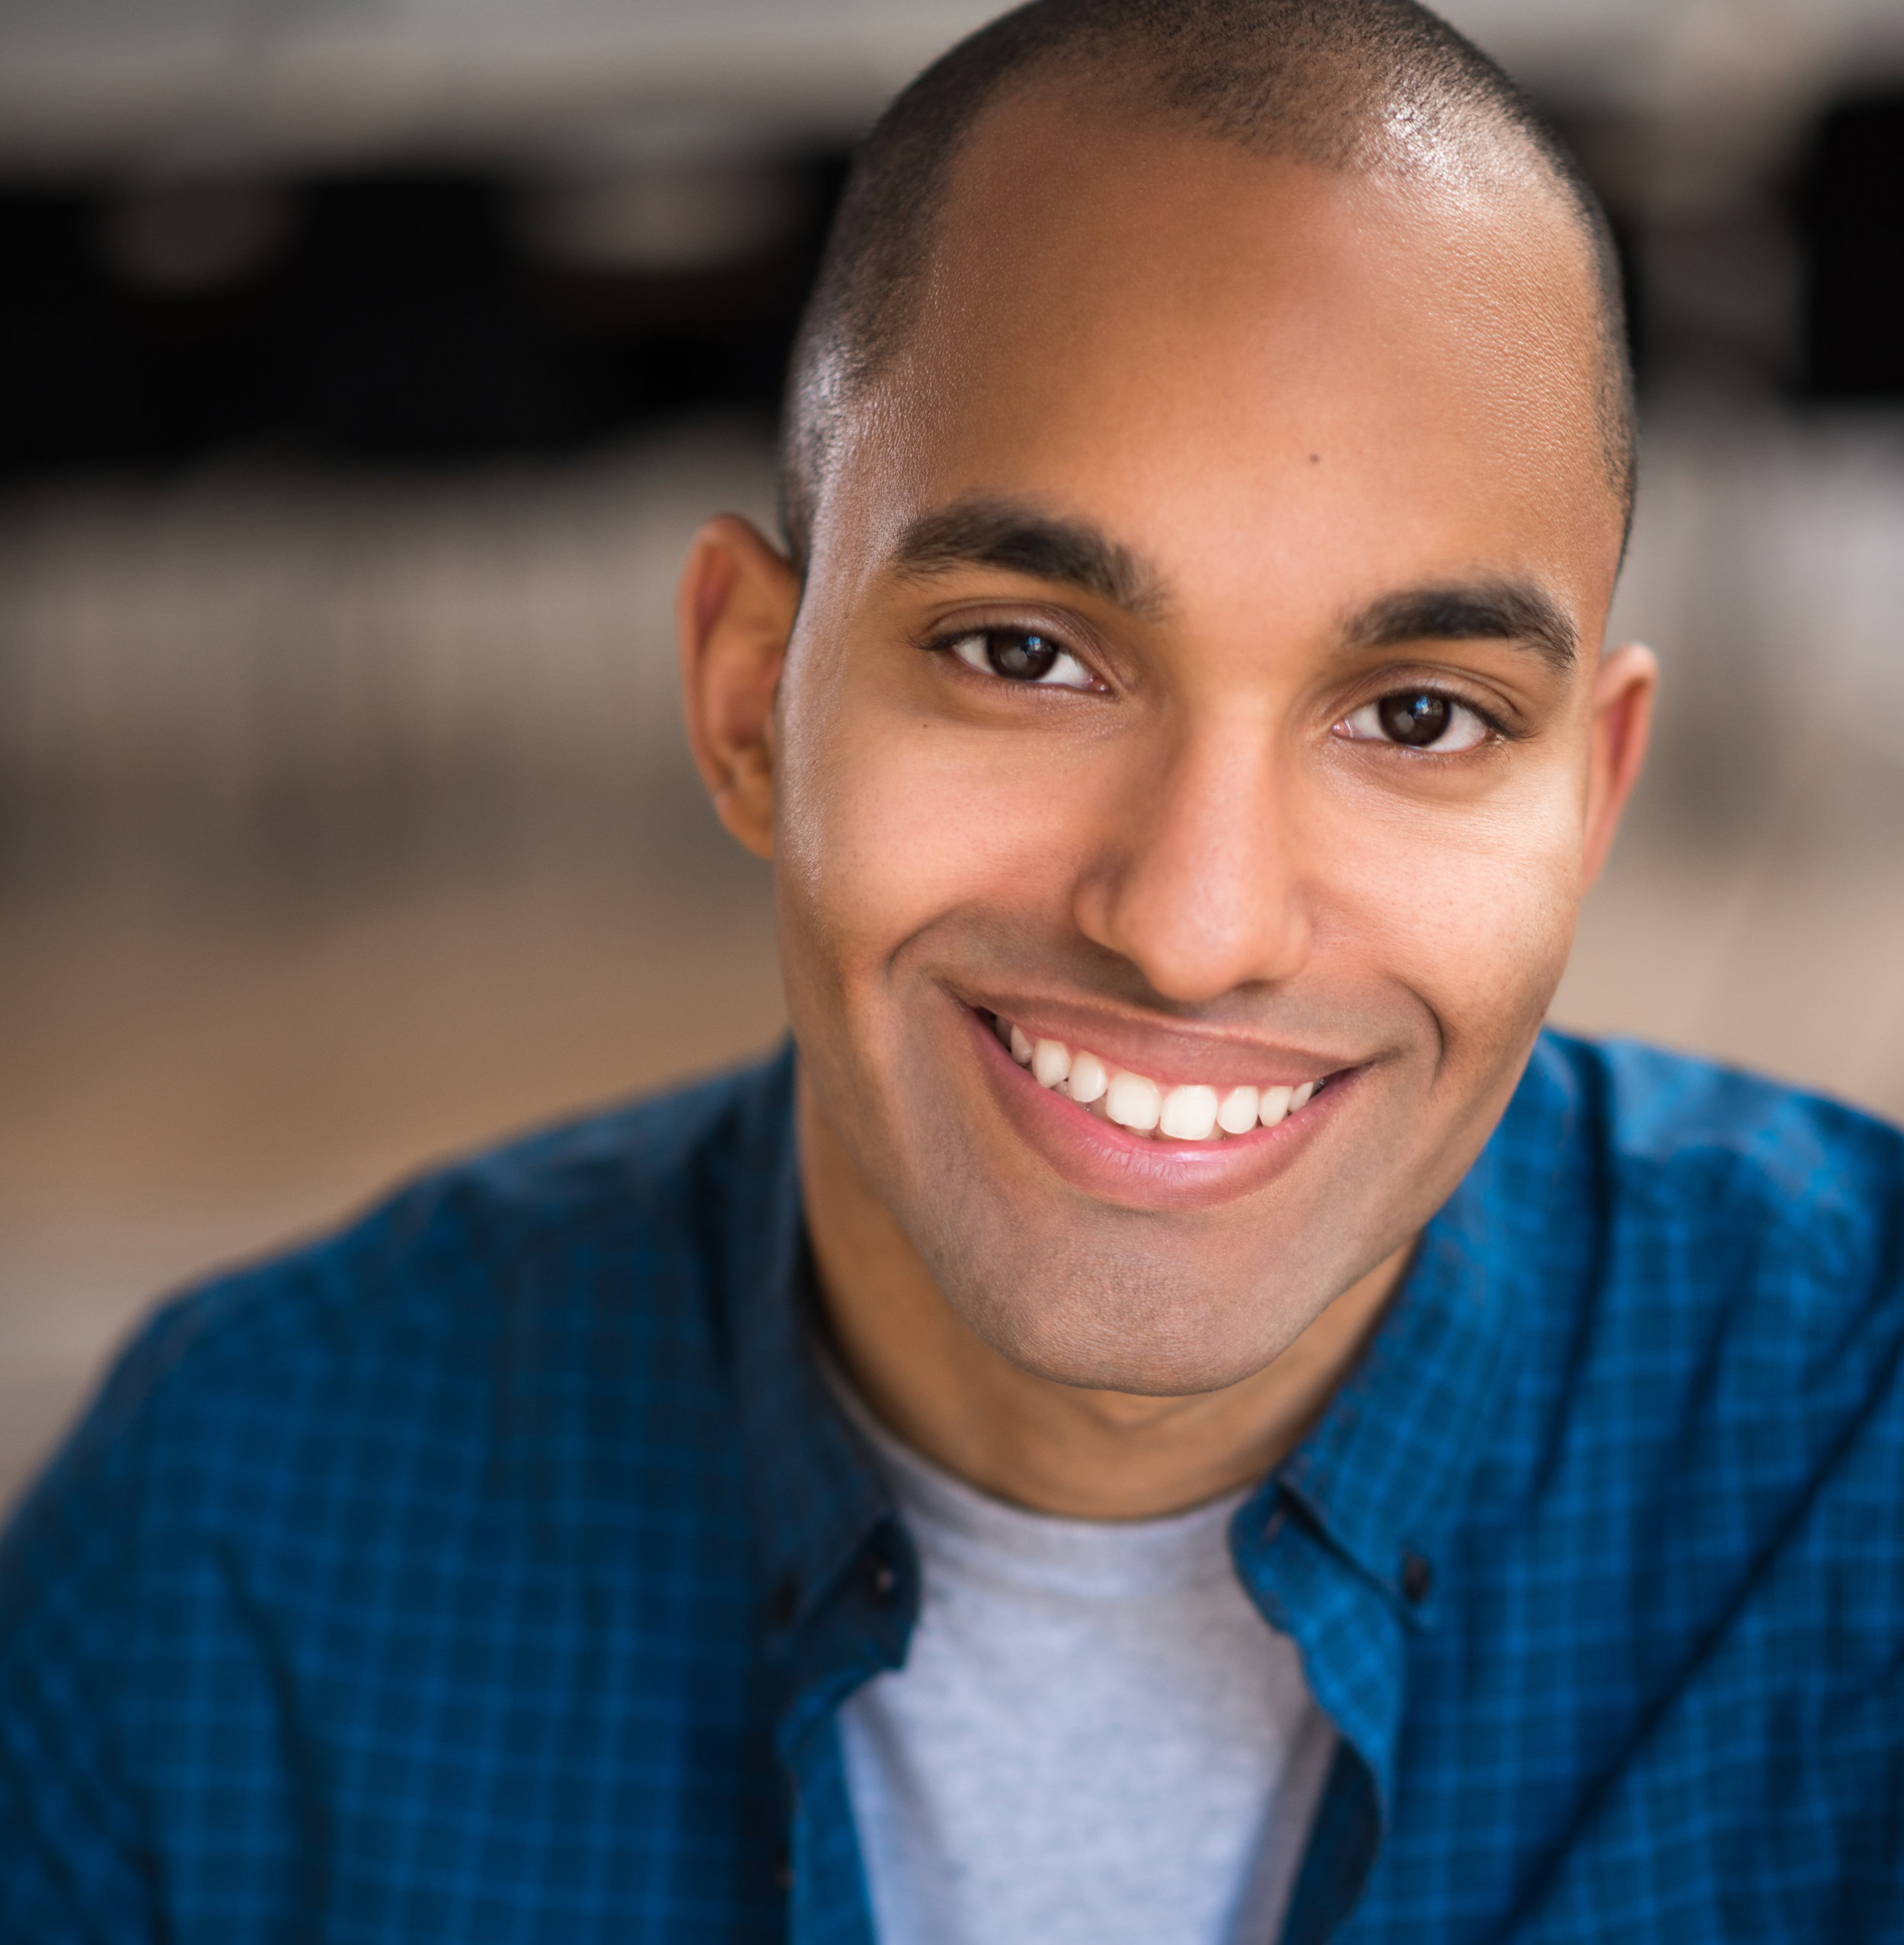 MEET AMILCAR! - Amilcar Javier is a non-union, New York City based actor training in advanced acting techniques with Anthony Abeson and scene study with Shae D'lyn.In addition to his career as an actor, Amilcar is also a writer, producer, and software developer.